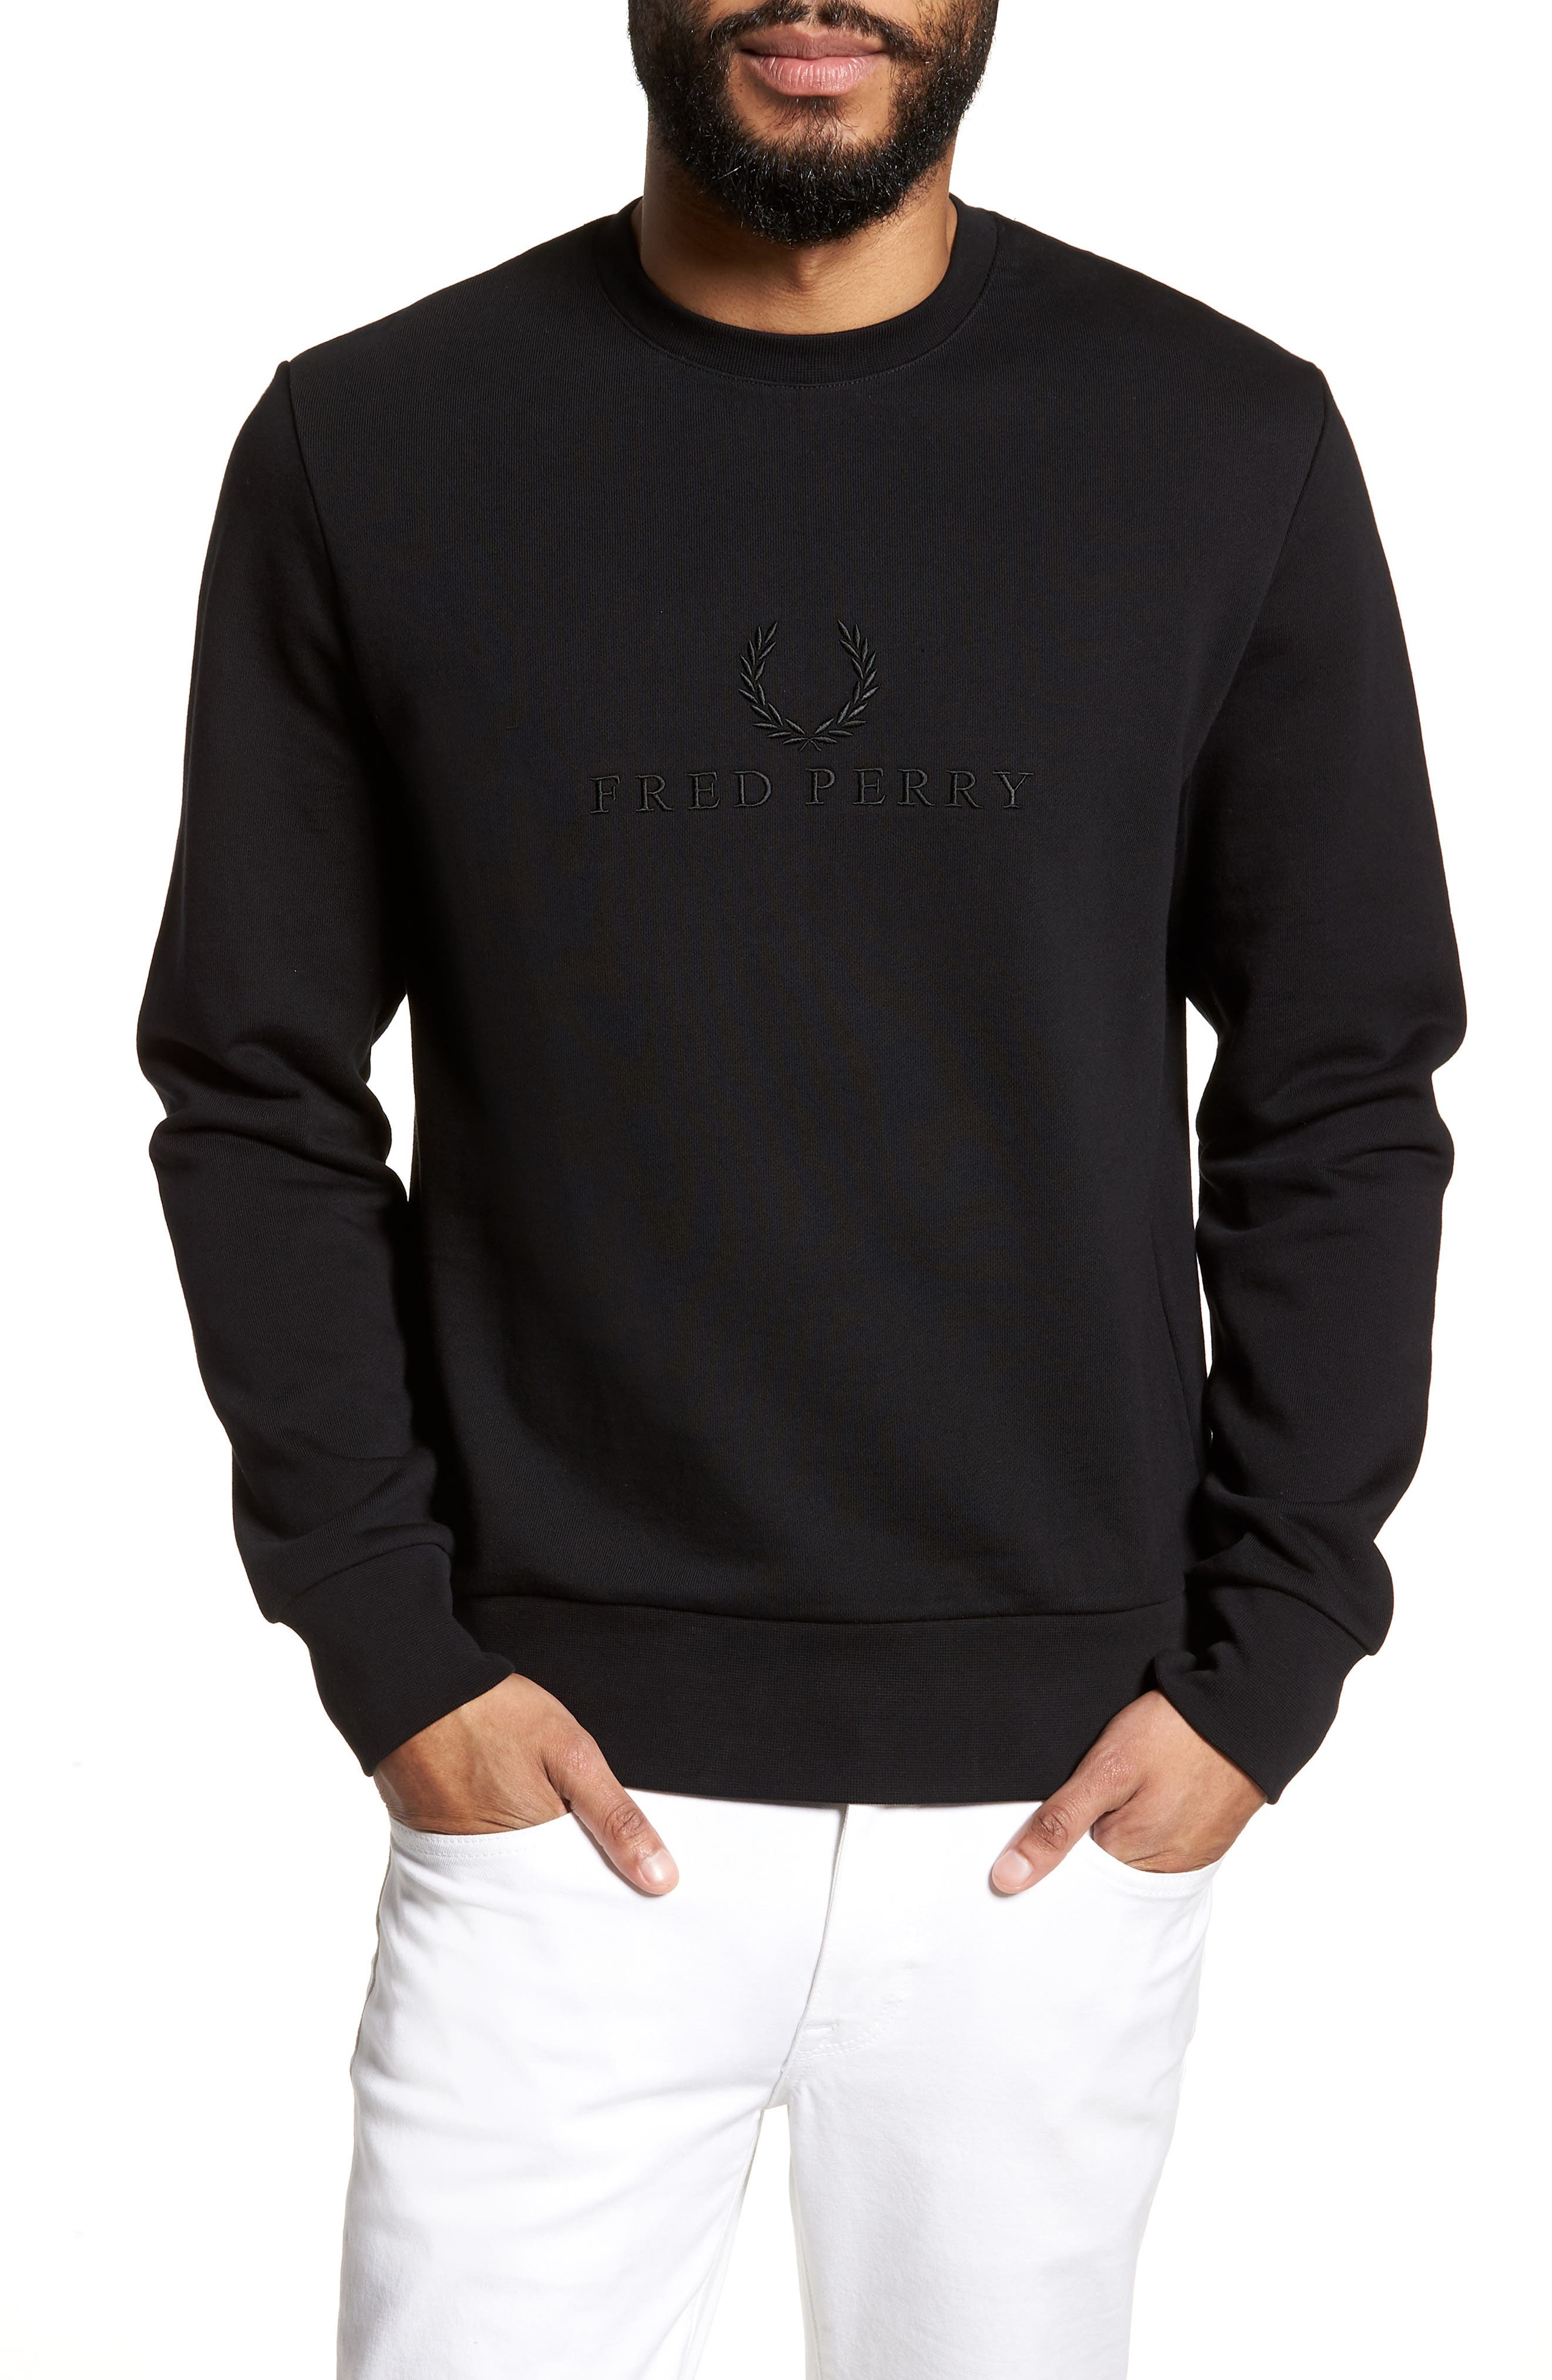 Alternate Image 1 Selected - Fred Perry Embroidered Sweatshirt